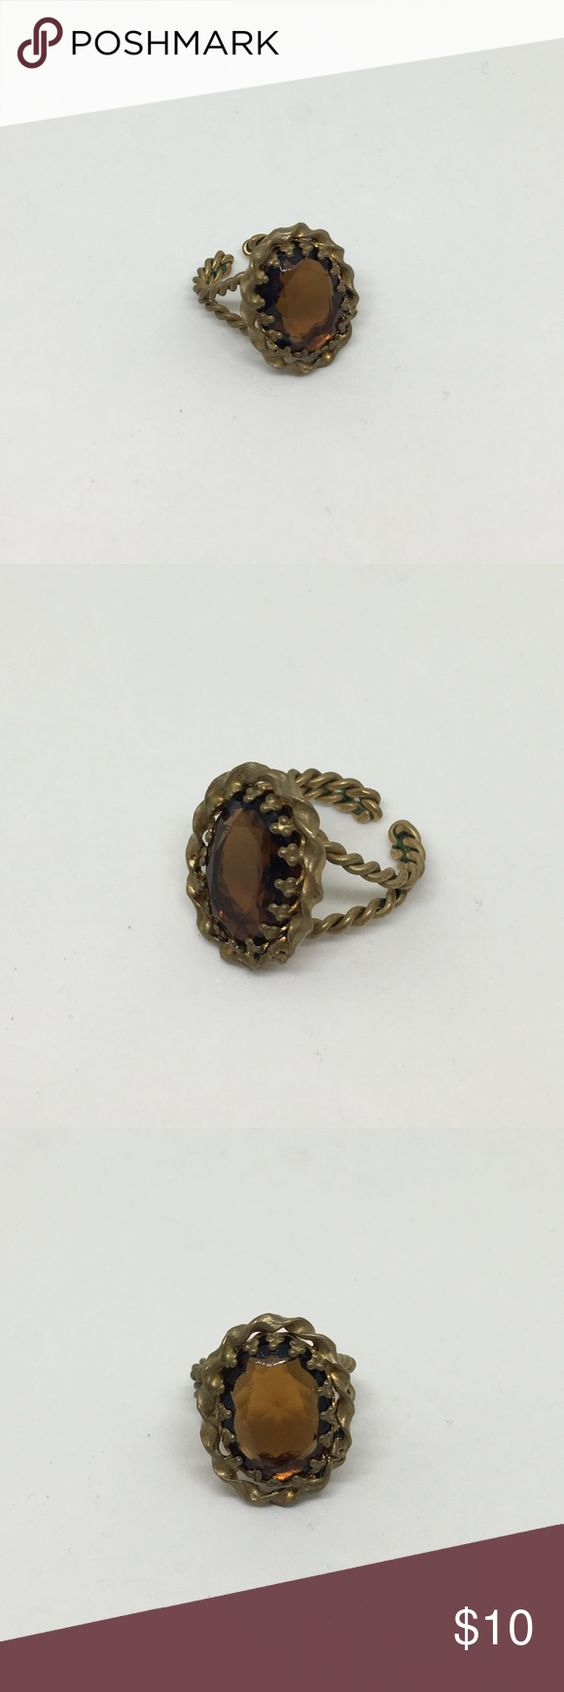 """🆕Vintage Antique Gold Brown Faceted Ring An adjustable ring made of braided antique gold, with a faceted glass """"stone"""" in a deep brown. Adjustable from size 5 up. In excellent vintage condition. Vintage Jewelry Rings"""